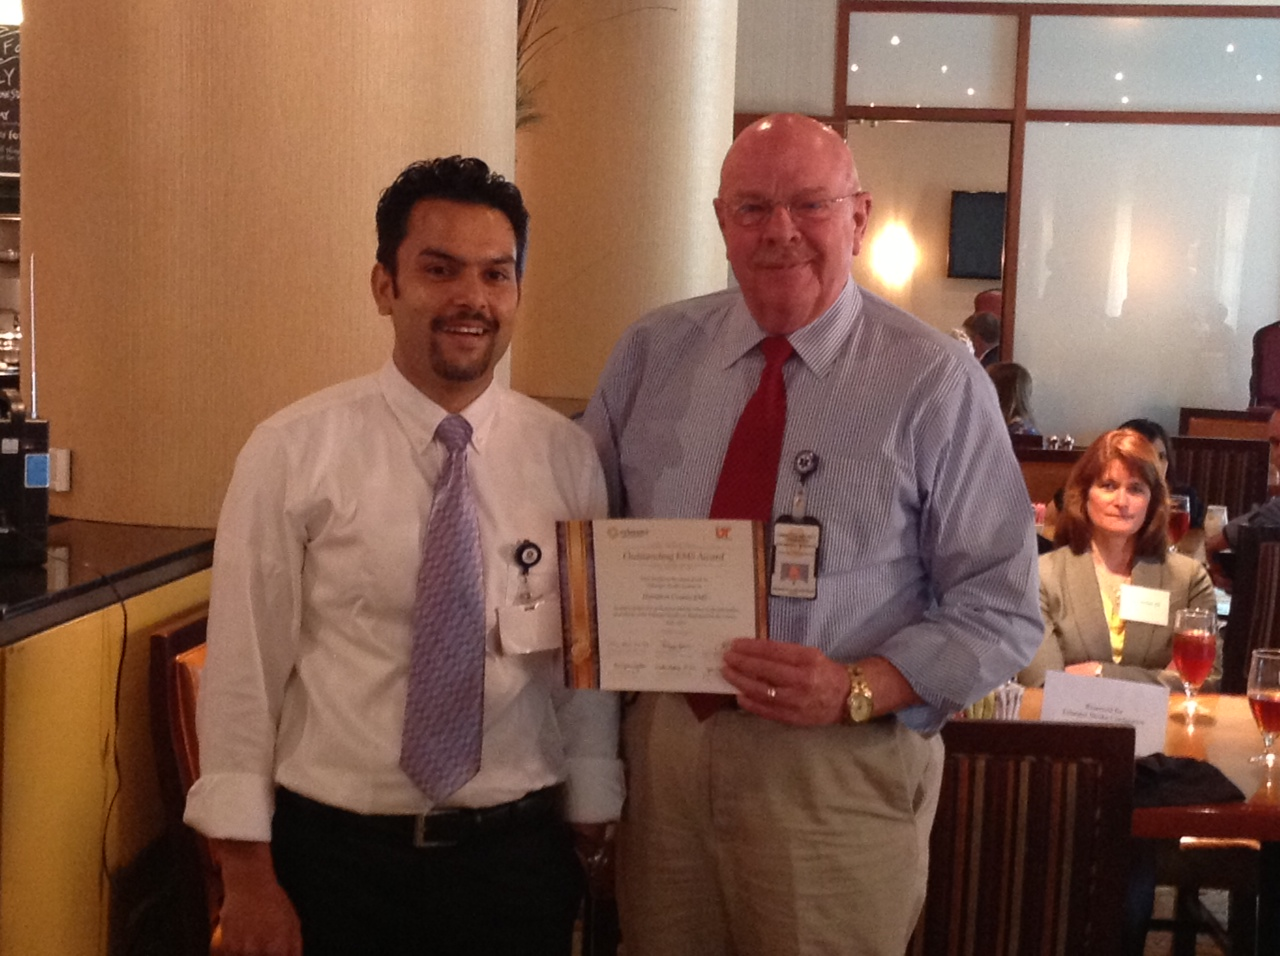 HCEMS receives Award